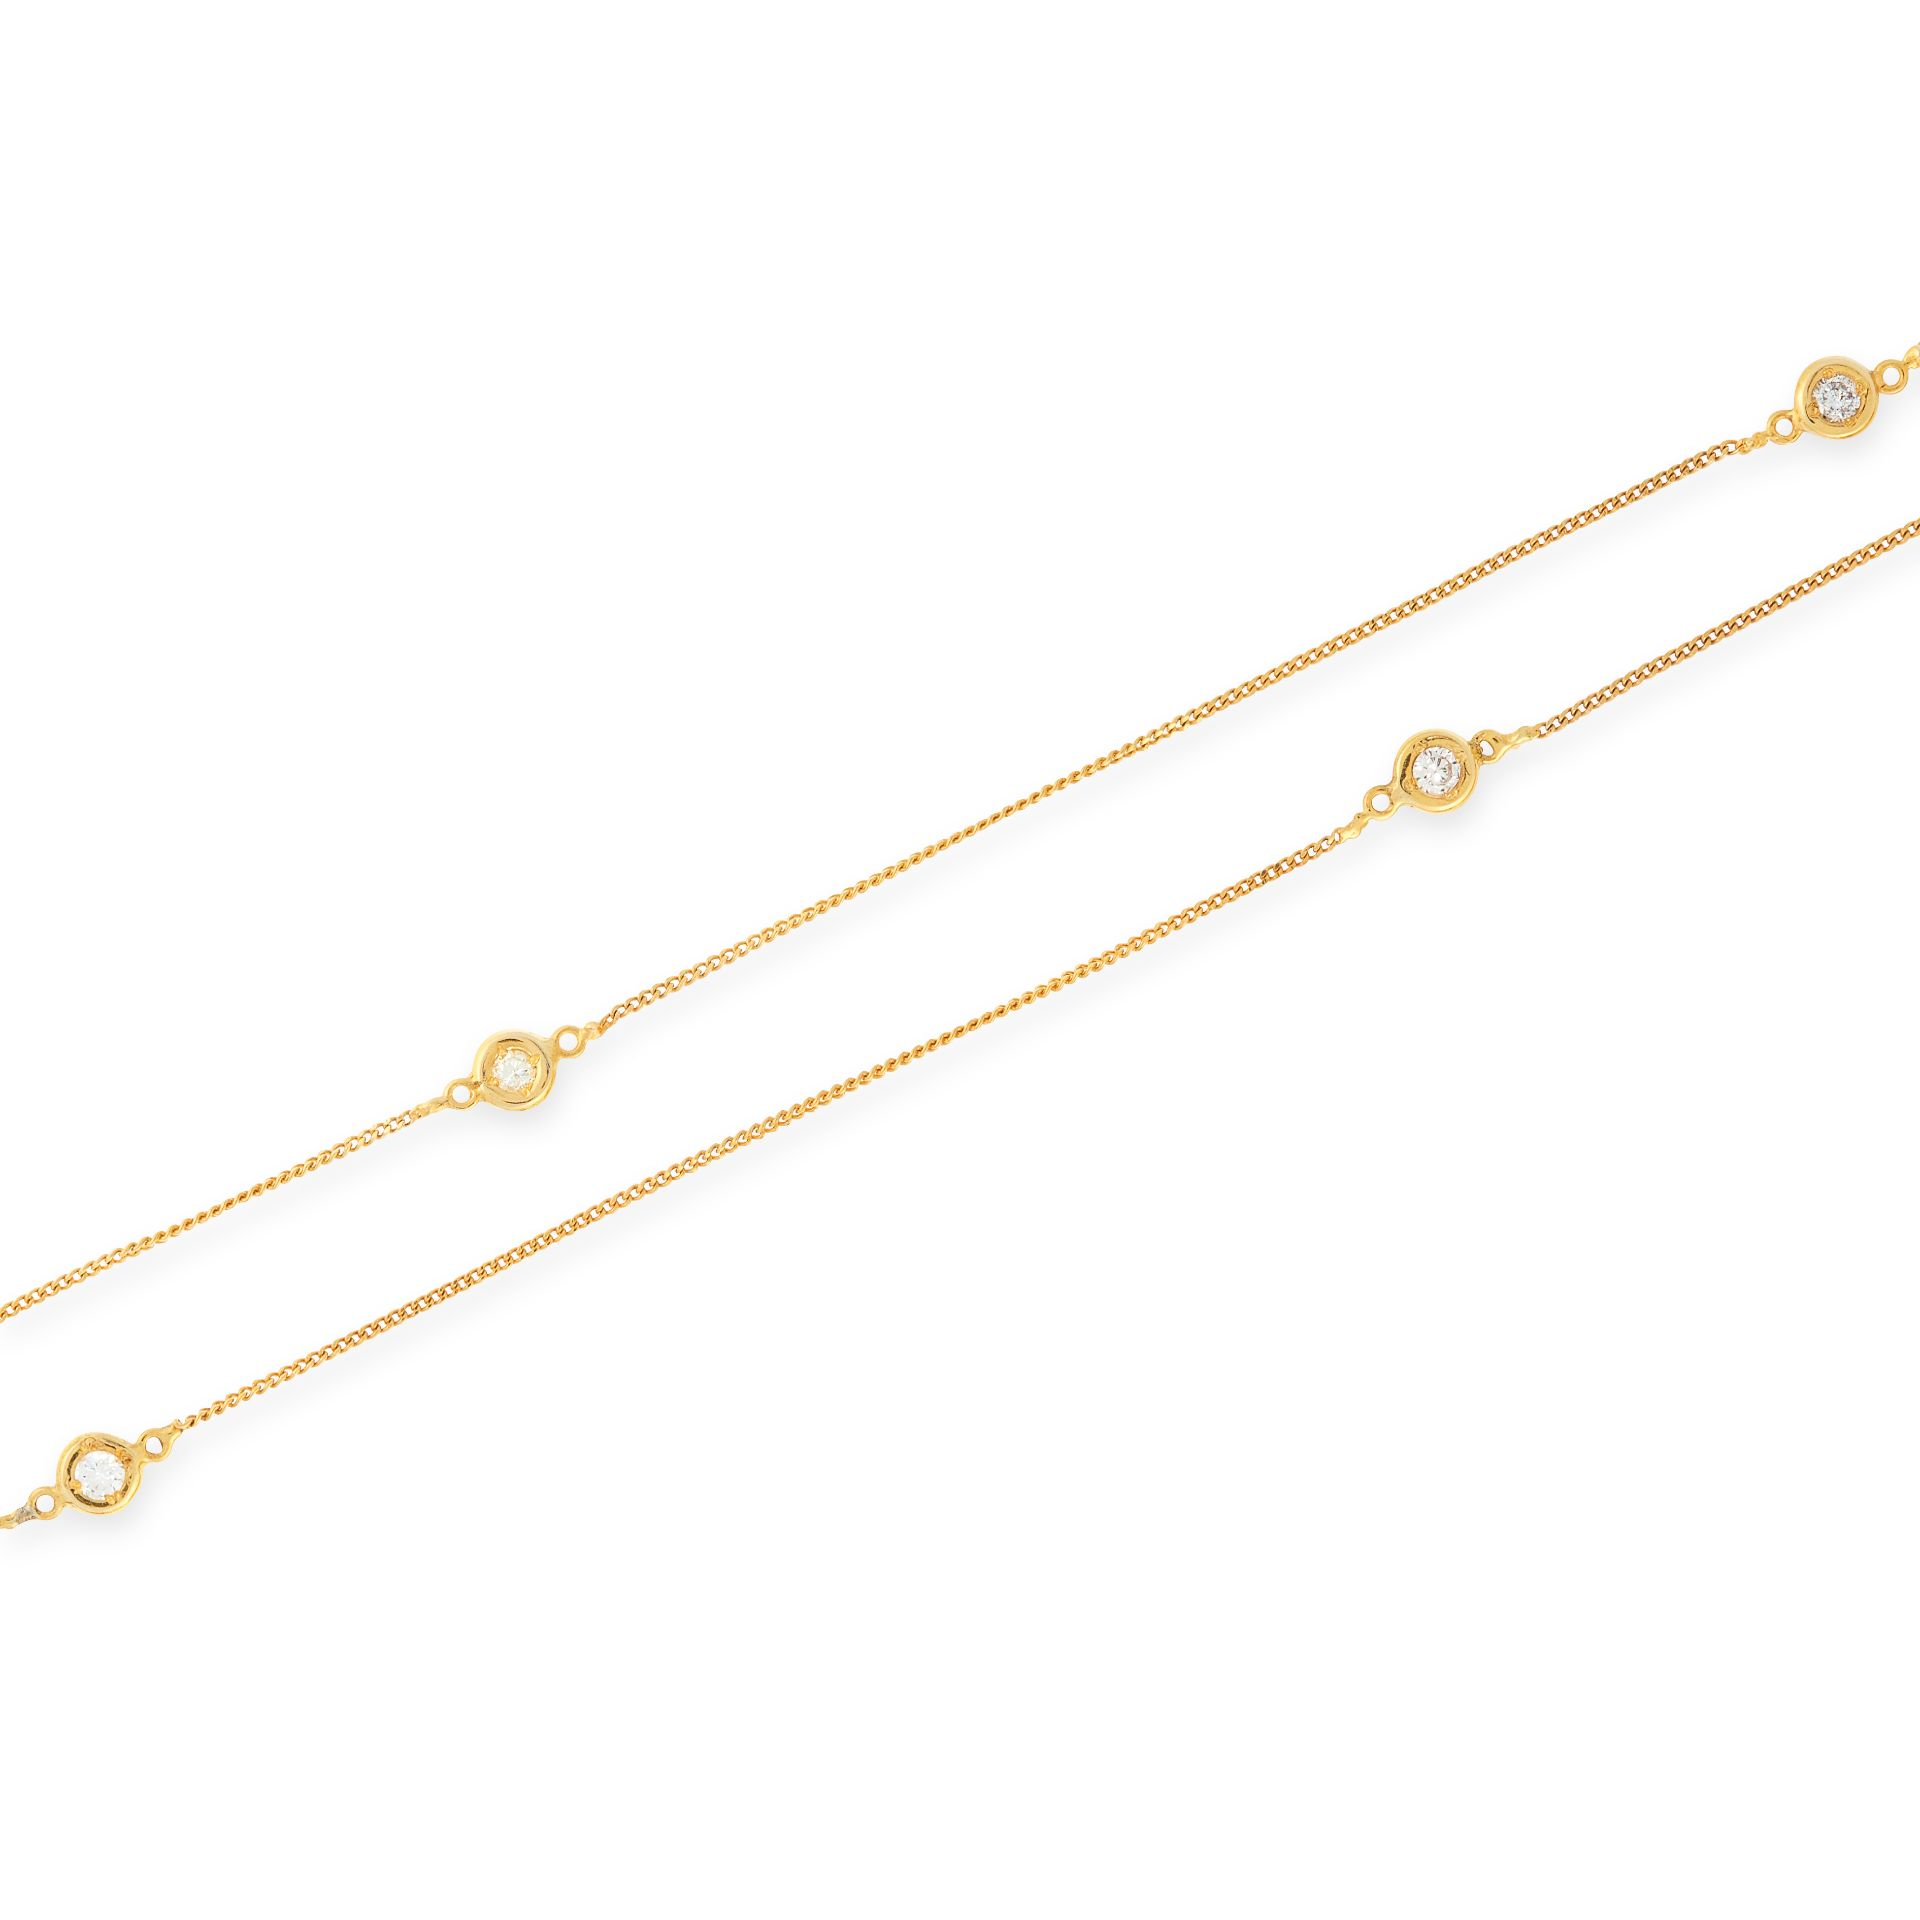 A DIAMOND LONG CHAIN NECKLACE in 15ct yellow gold, set with fifteen round cut diamonds totalling 1. - Bild 2 aus 2